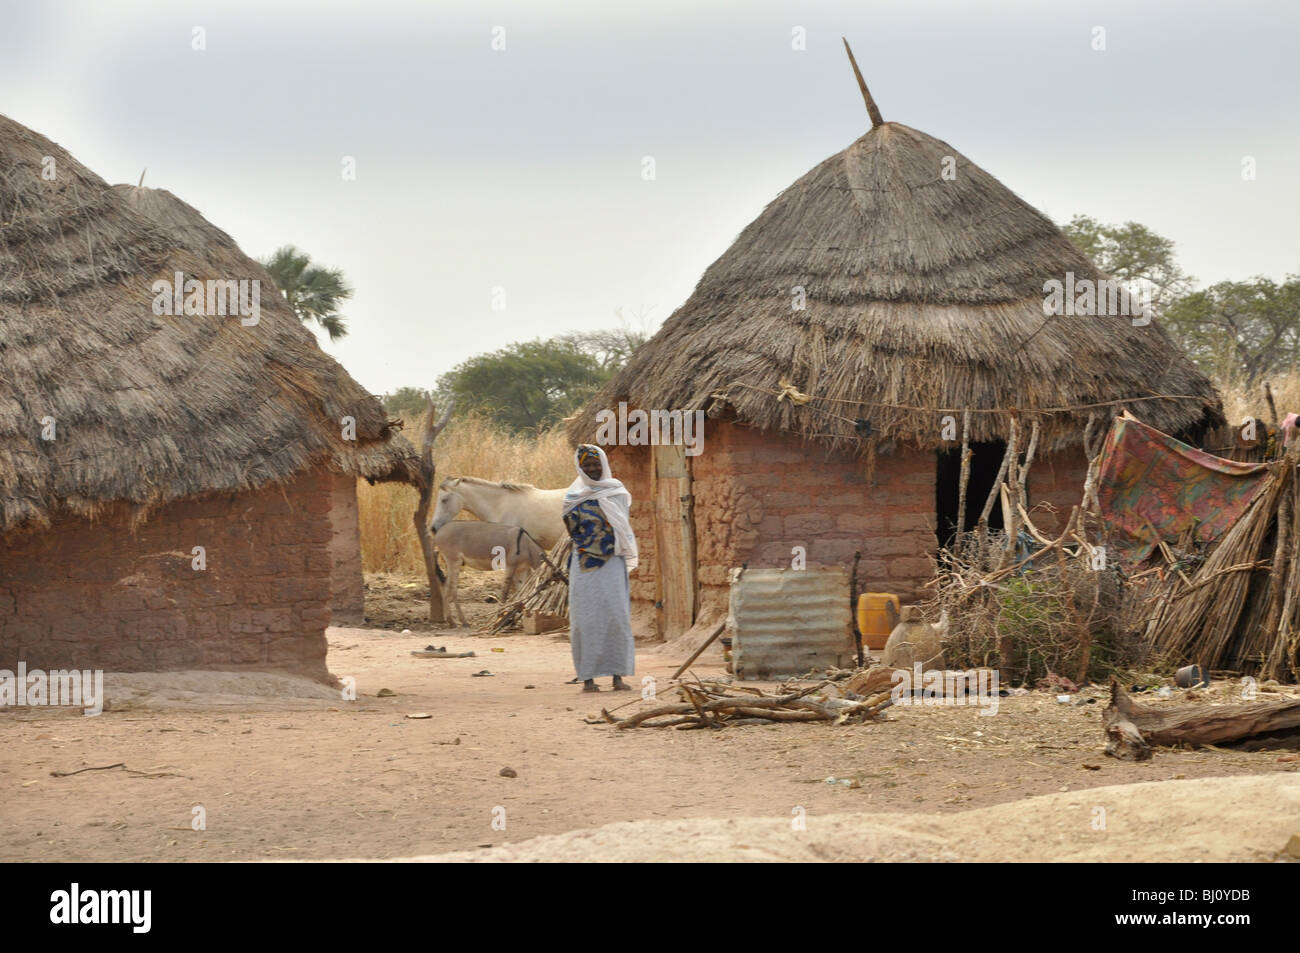 Compound in a village in The Gambia Stock Photo, Royalty ...  Compound in a v...